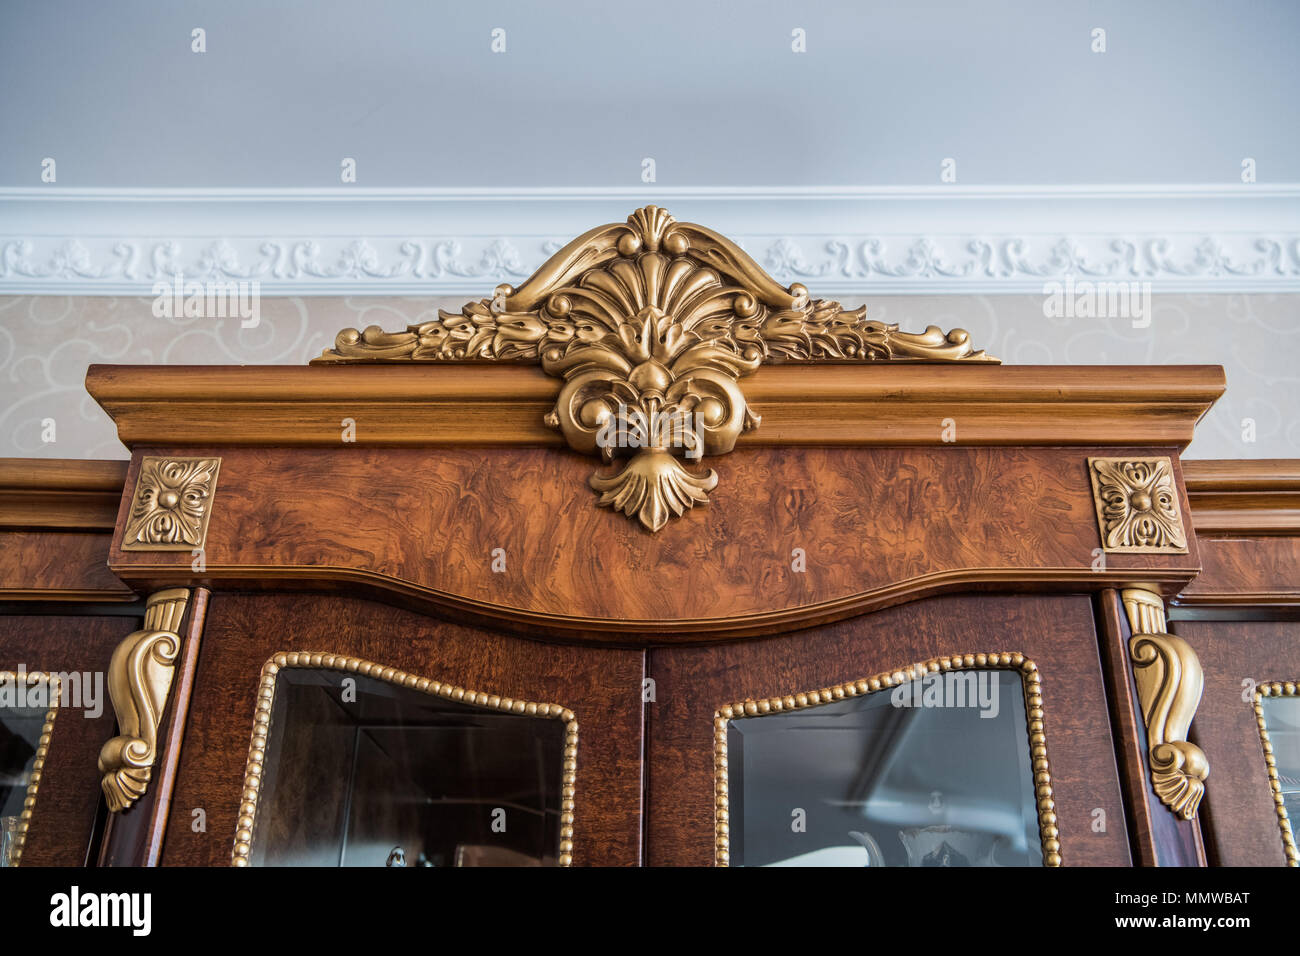 Luxury cupboard with stucco mouldings. Vintage woodworking and finishing on antique furniture. - Stock Image